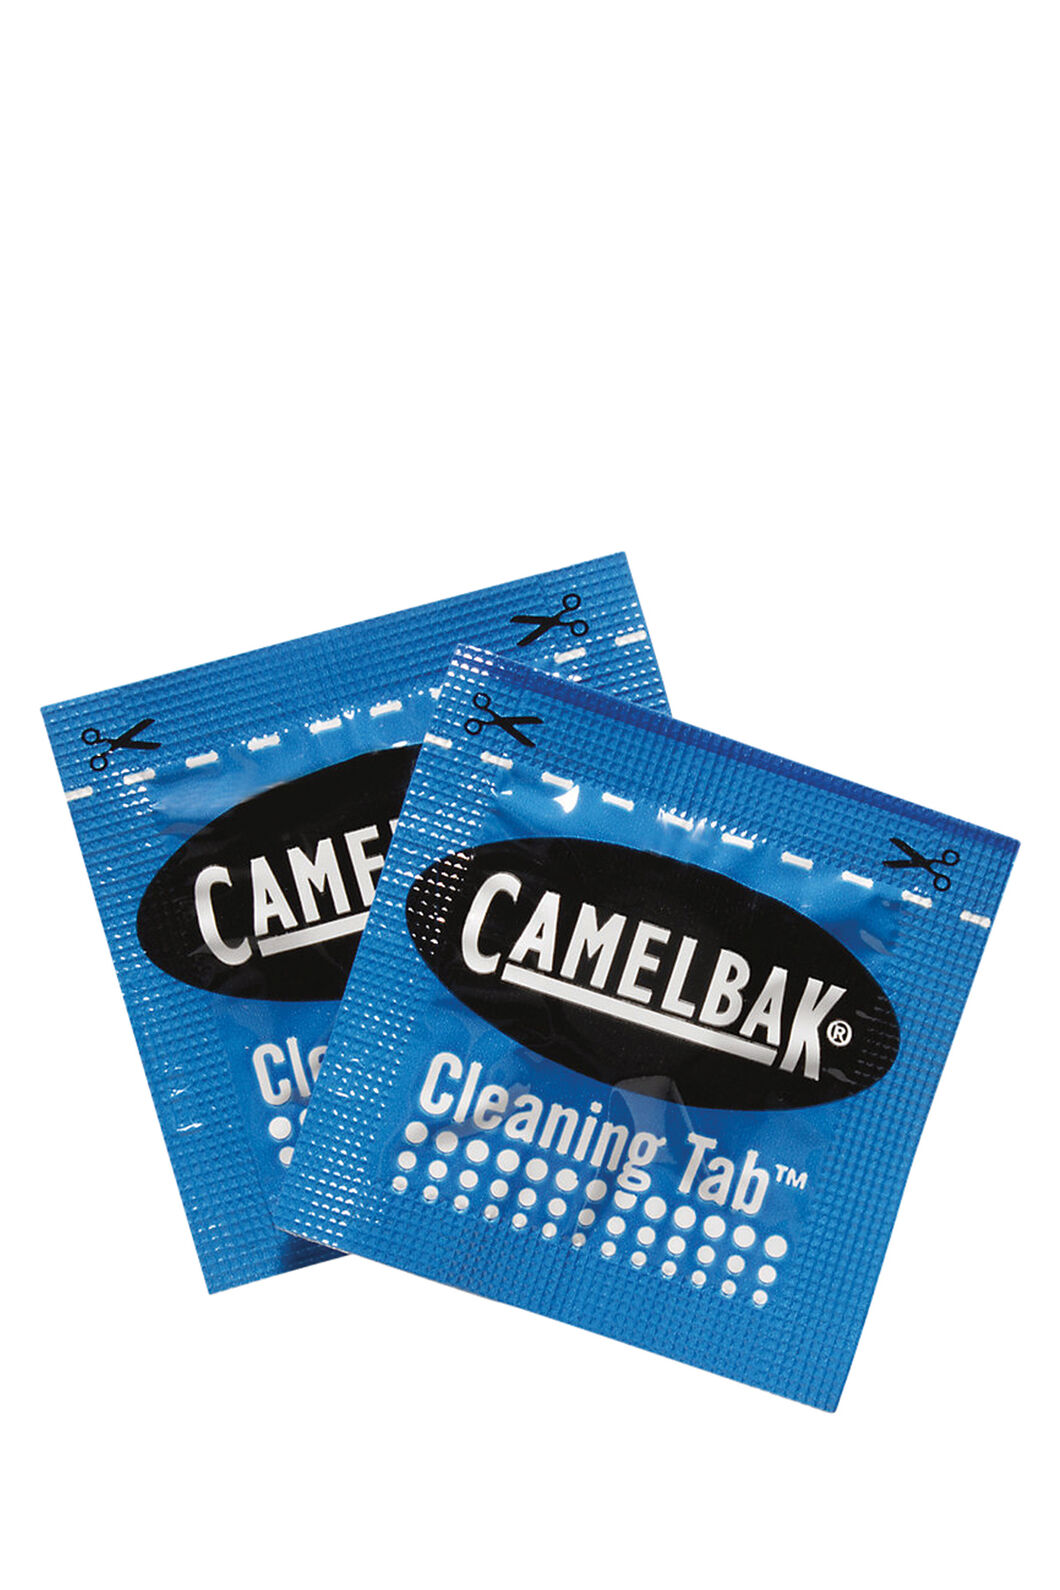 Camelbak 8 Pack Drink Bottle Cleaning Tablets, None, hi-res